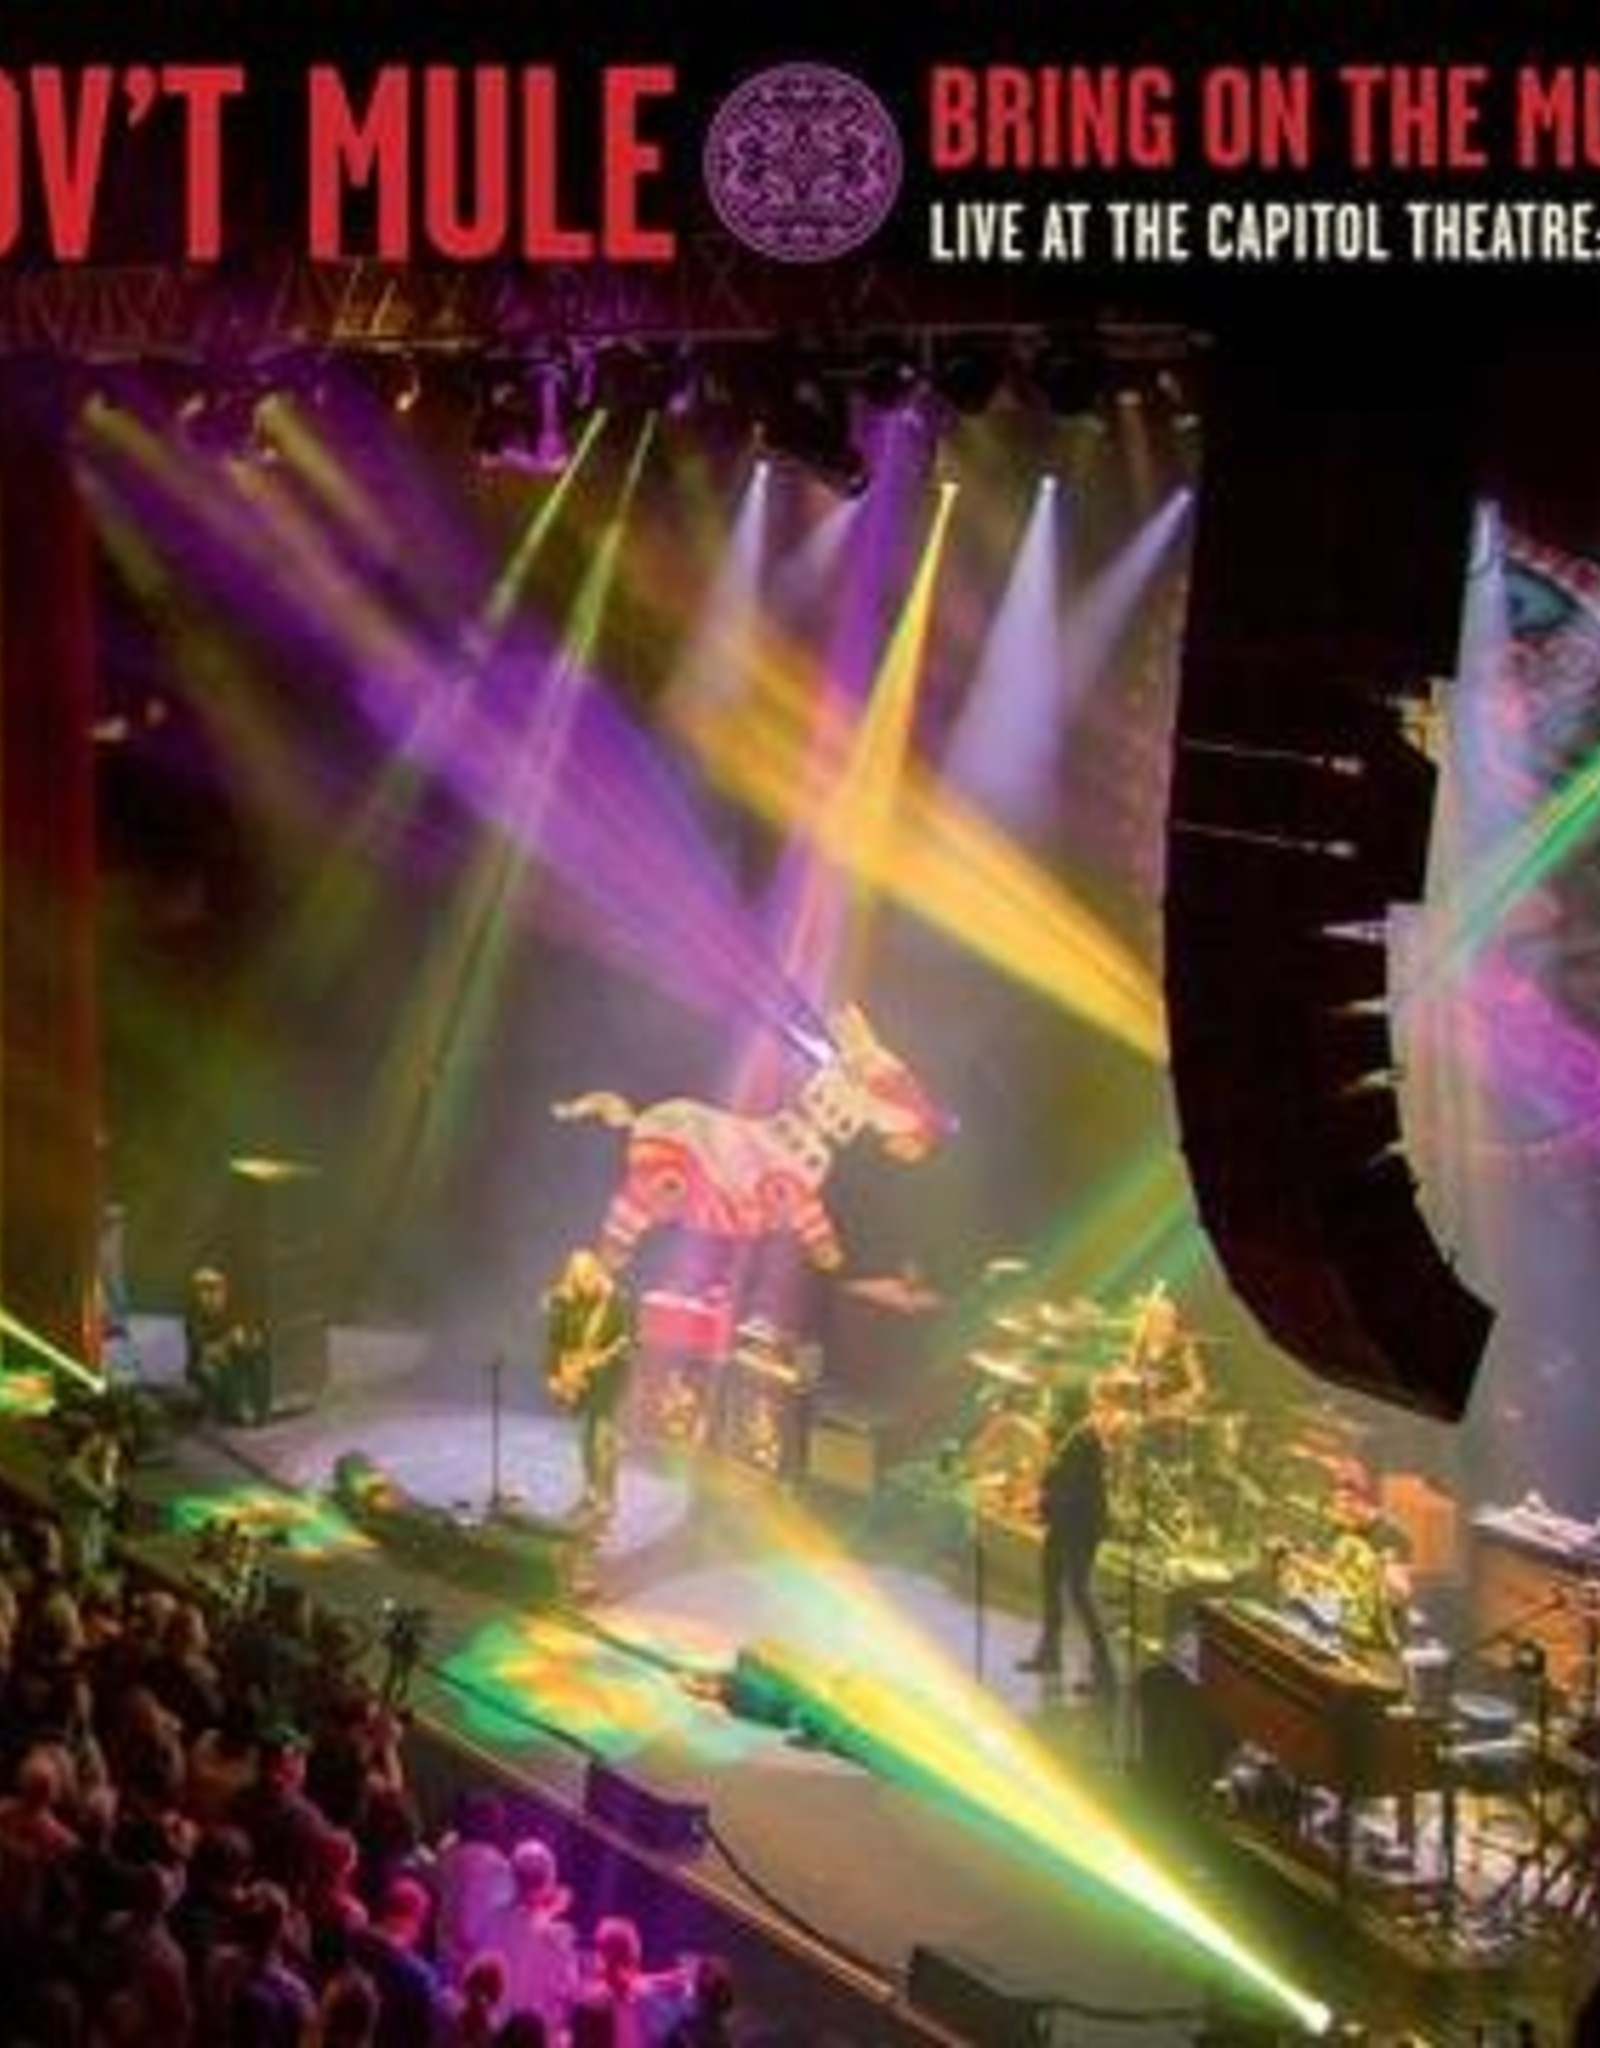 Gov'T Mule - Bring On The Music - Live At The Capitol Theatre: Vol 3 (Rsd 2019)